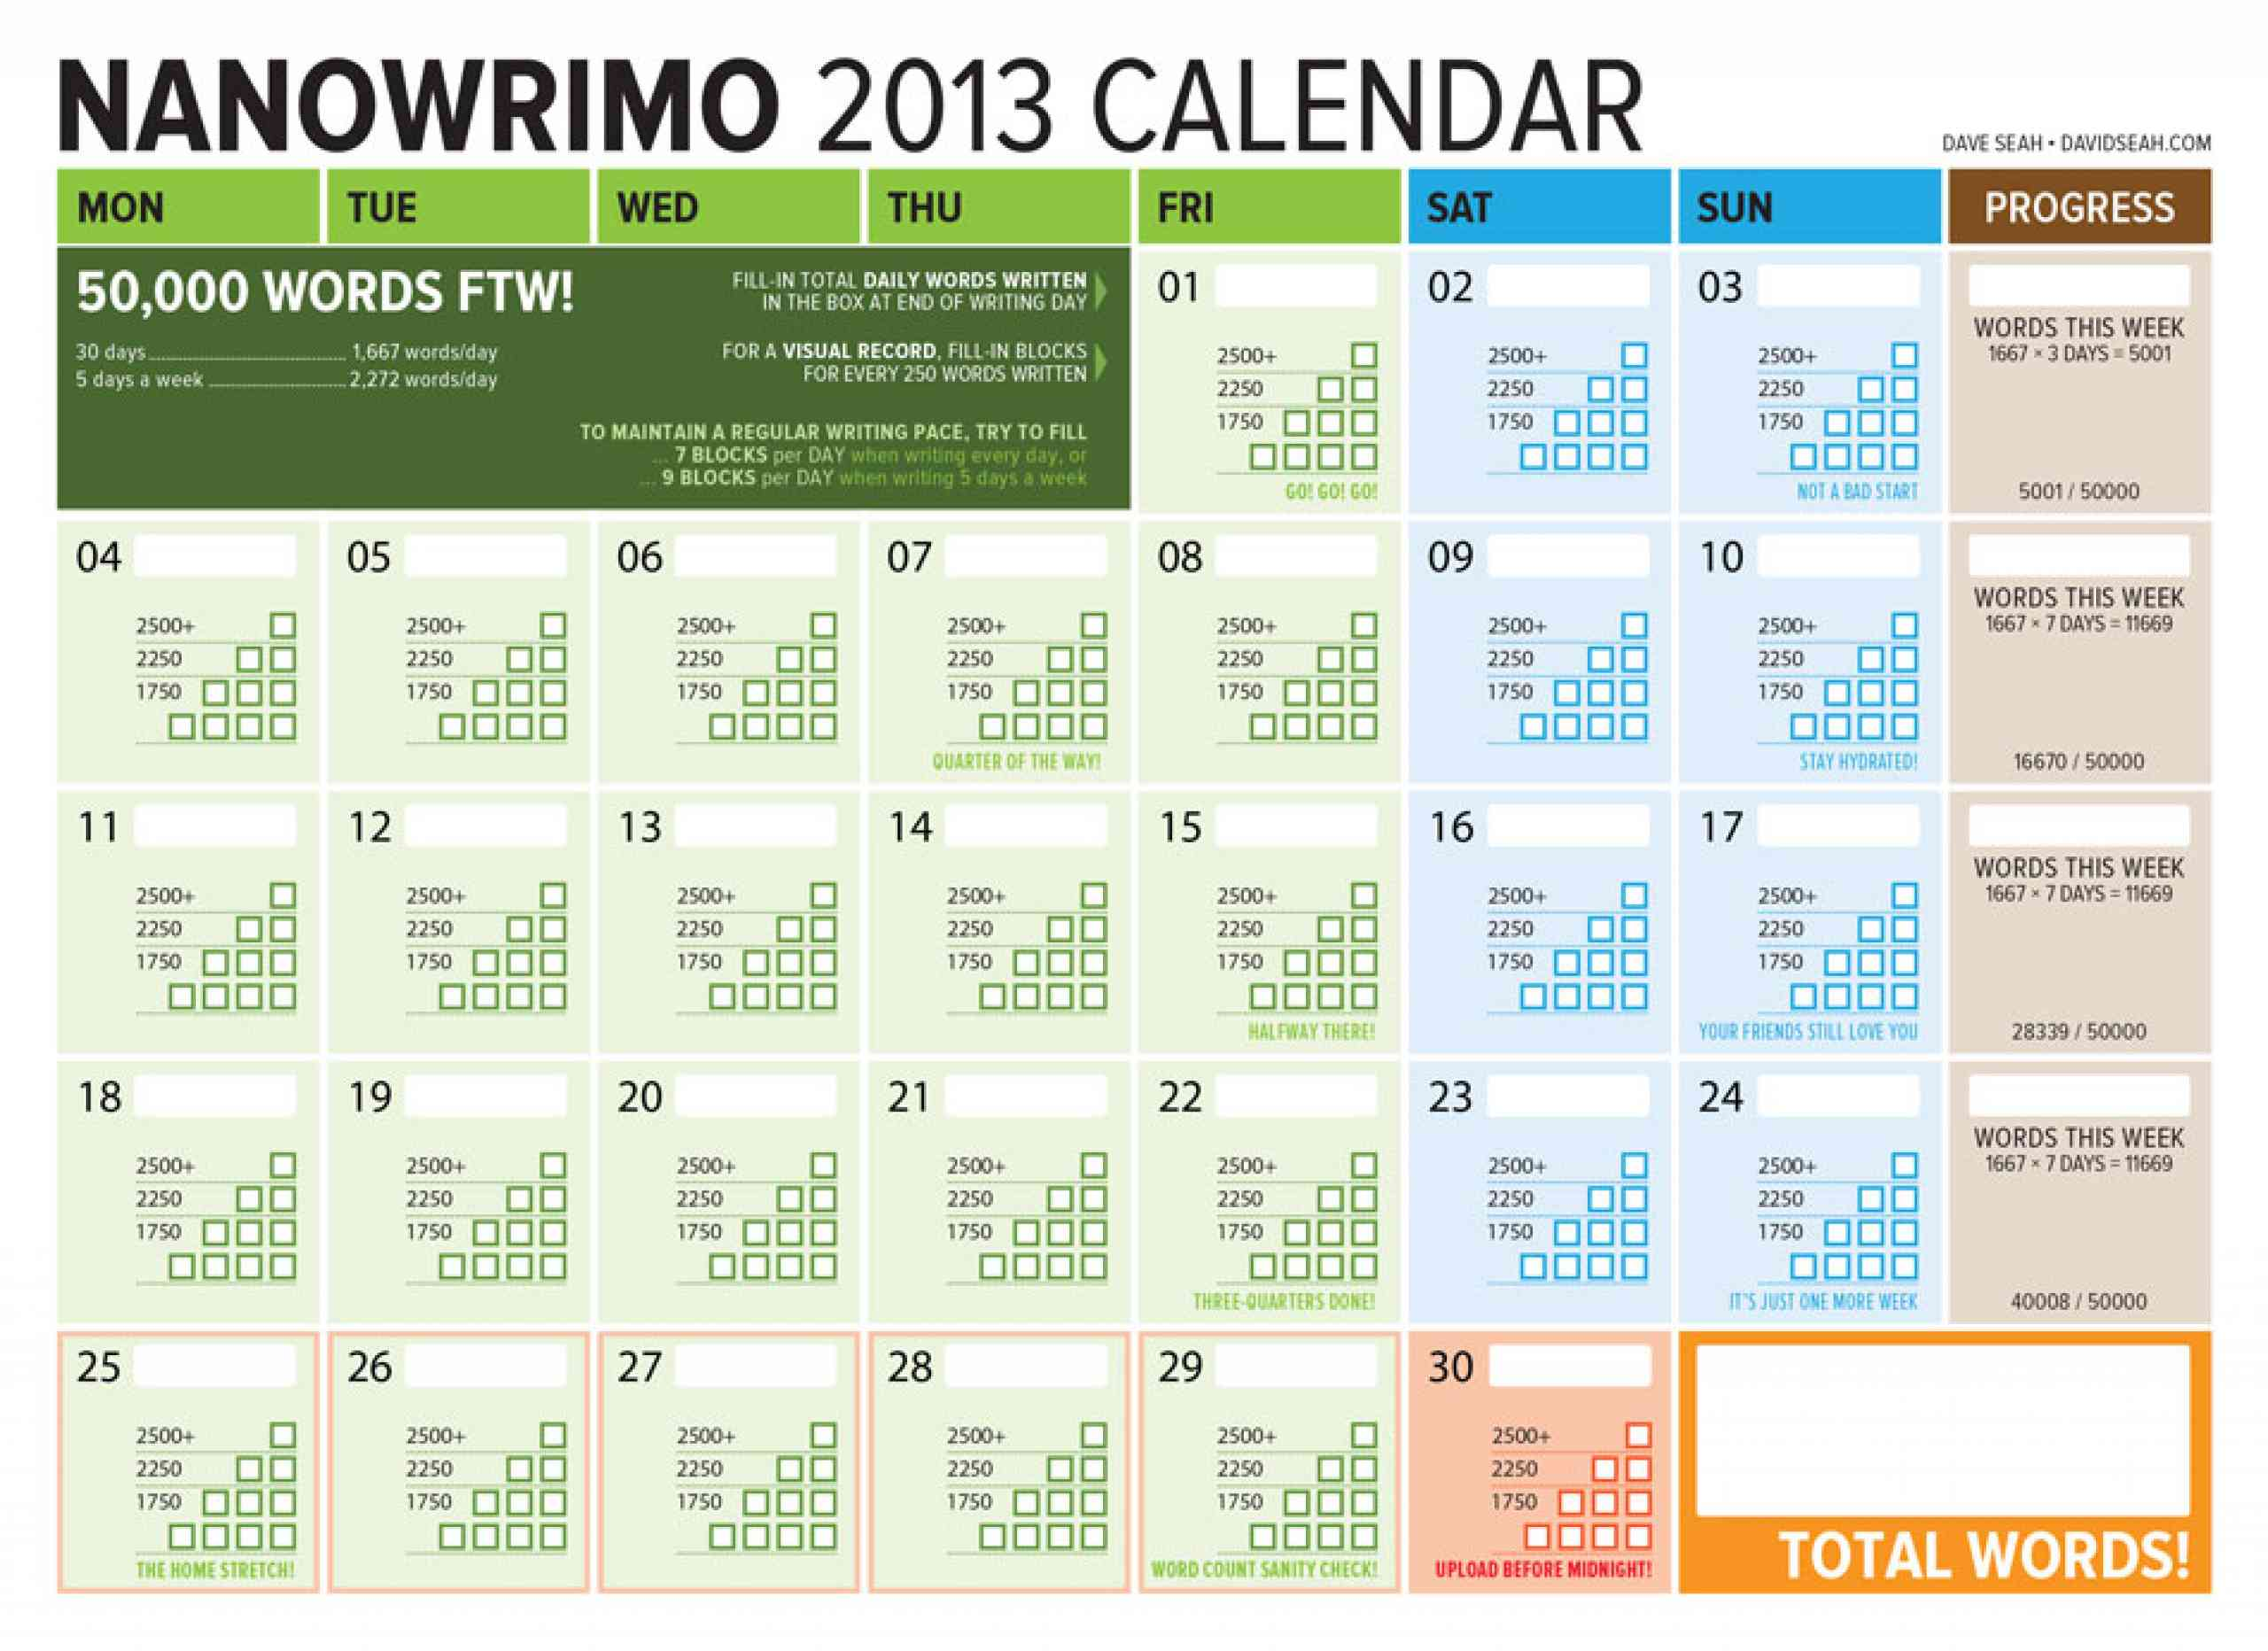 Here's my Tracking Word Count Calendar for November NaNoWriMo 2013